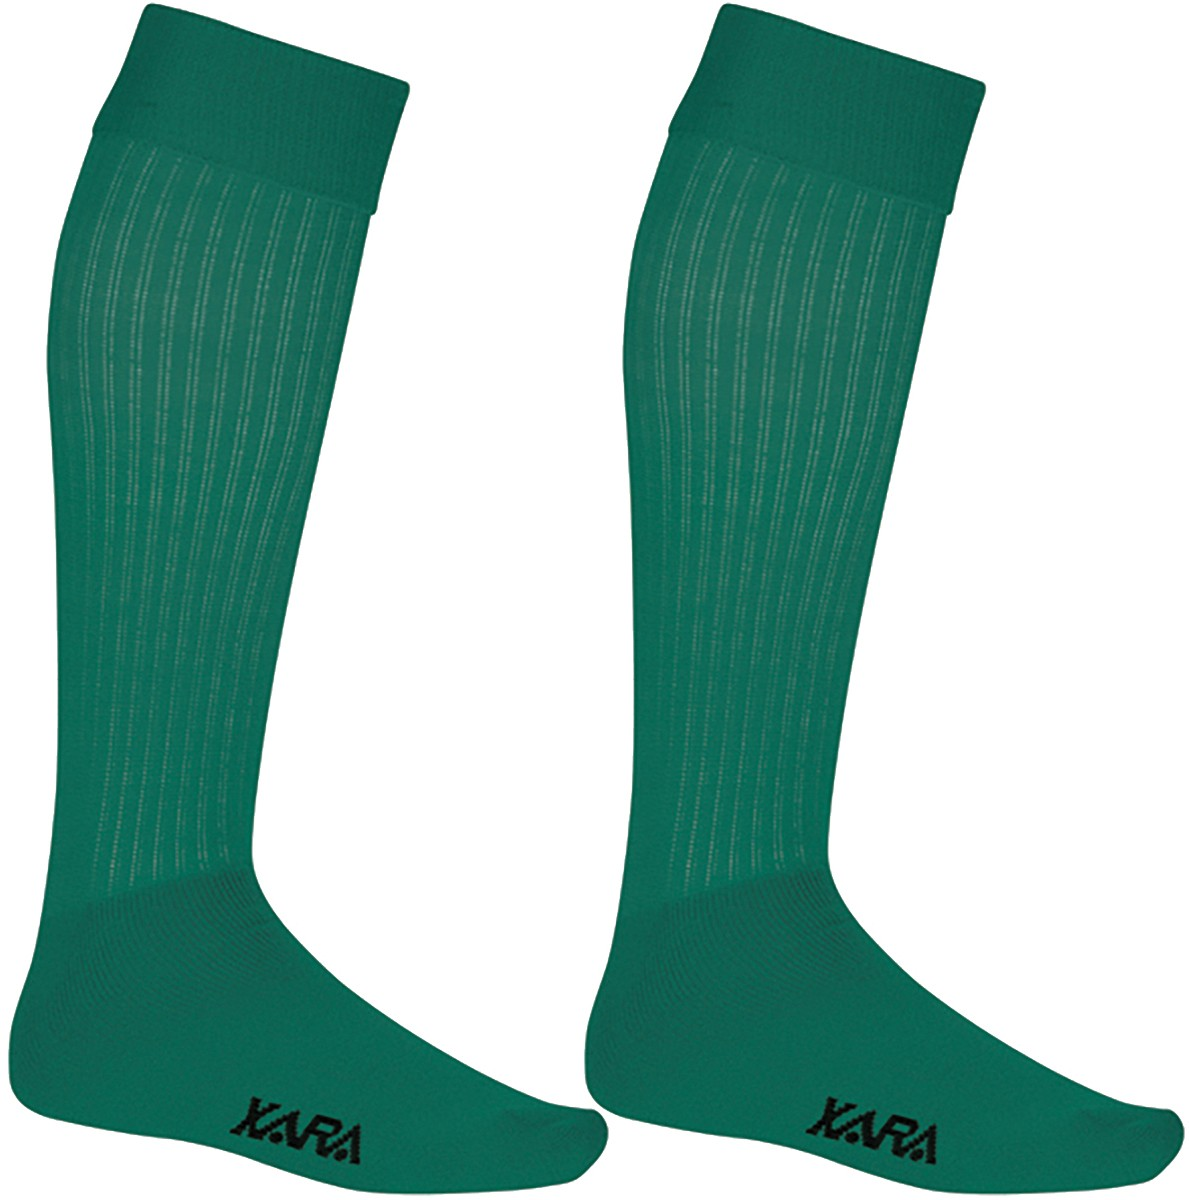 1ed65b926e50 Xara League Soccer Socks